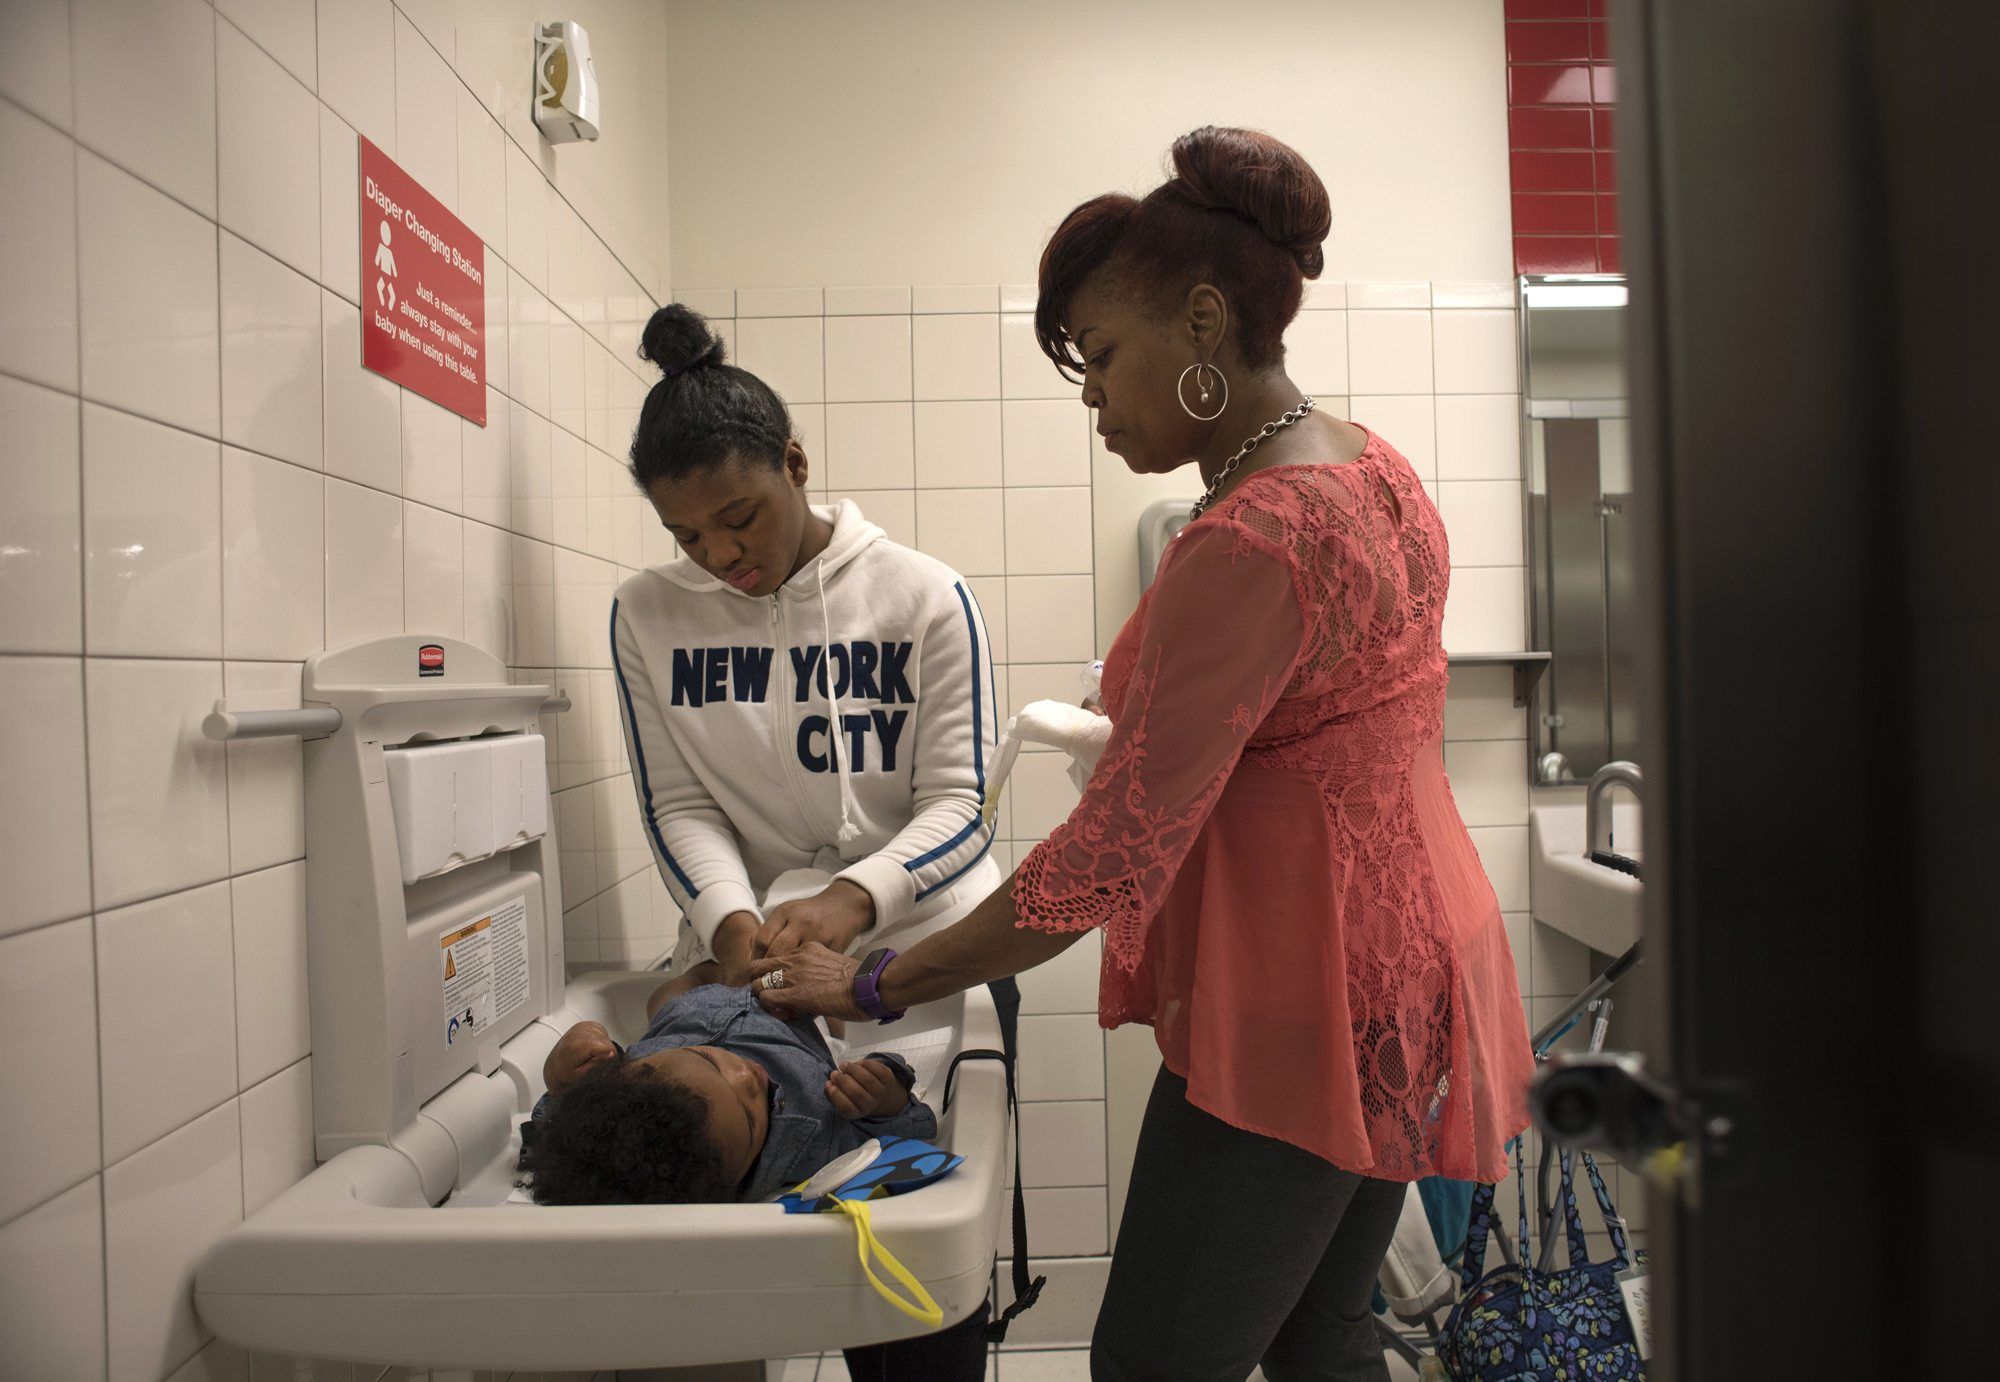 Adrienne Bradshaw, (right) helps Tyneisha Wilder, age 18, change Tayden's diaper in the restroom at Target in East Liberty during one of their twice-weekly supervised visits. (Photo by Martha Rial/PublicSource)